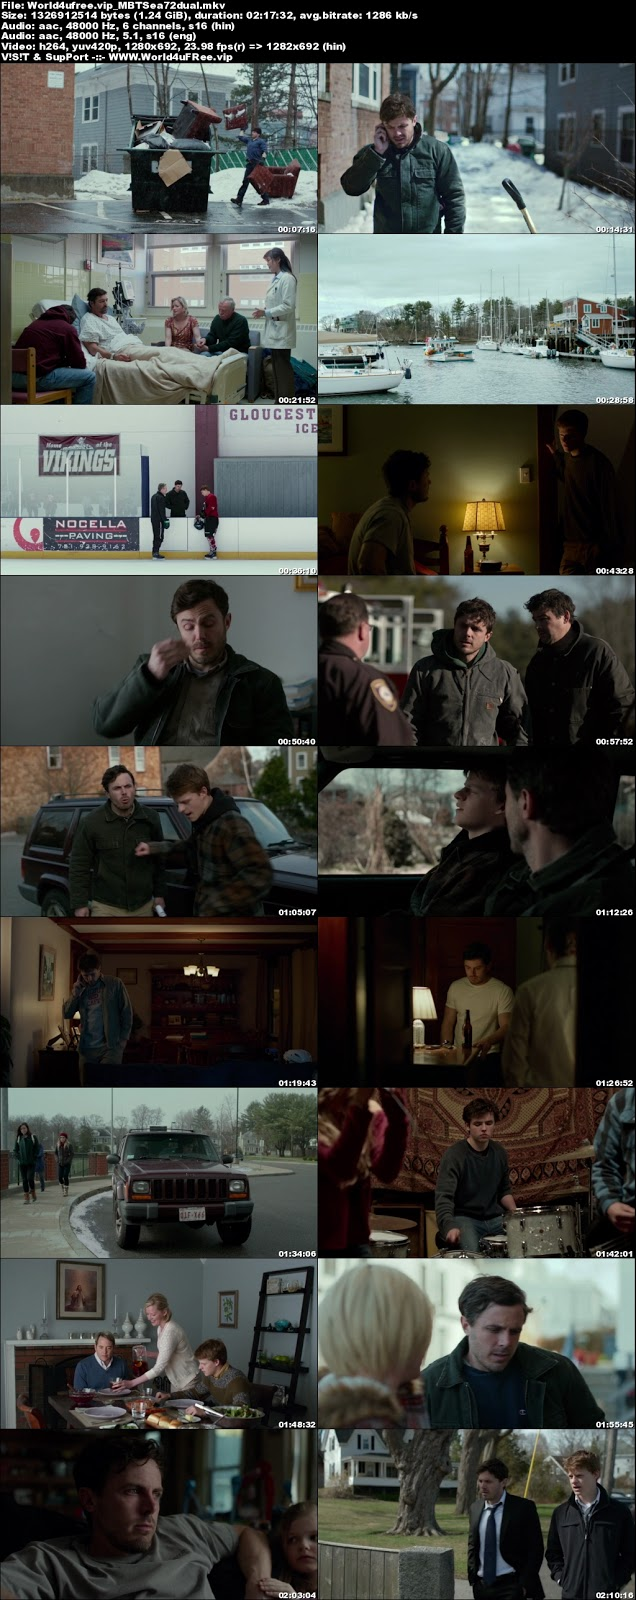 Manchester by the Sea 2016 Eng 720p BRRip 1.2GB ESub world4ufree.fun hollywood movie Manchester by the Sea 2016 english movie 720p BRRip blueray hdrip webrip web-dl 720p free download or watch online at world4ufree.fun